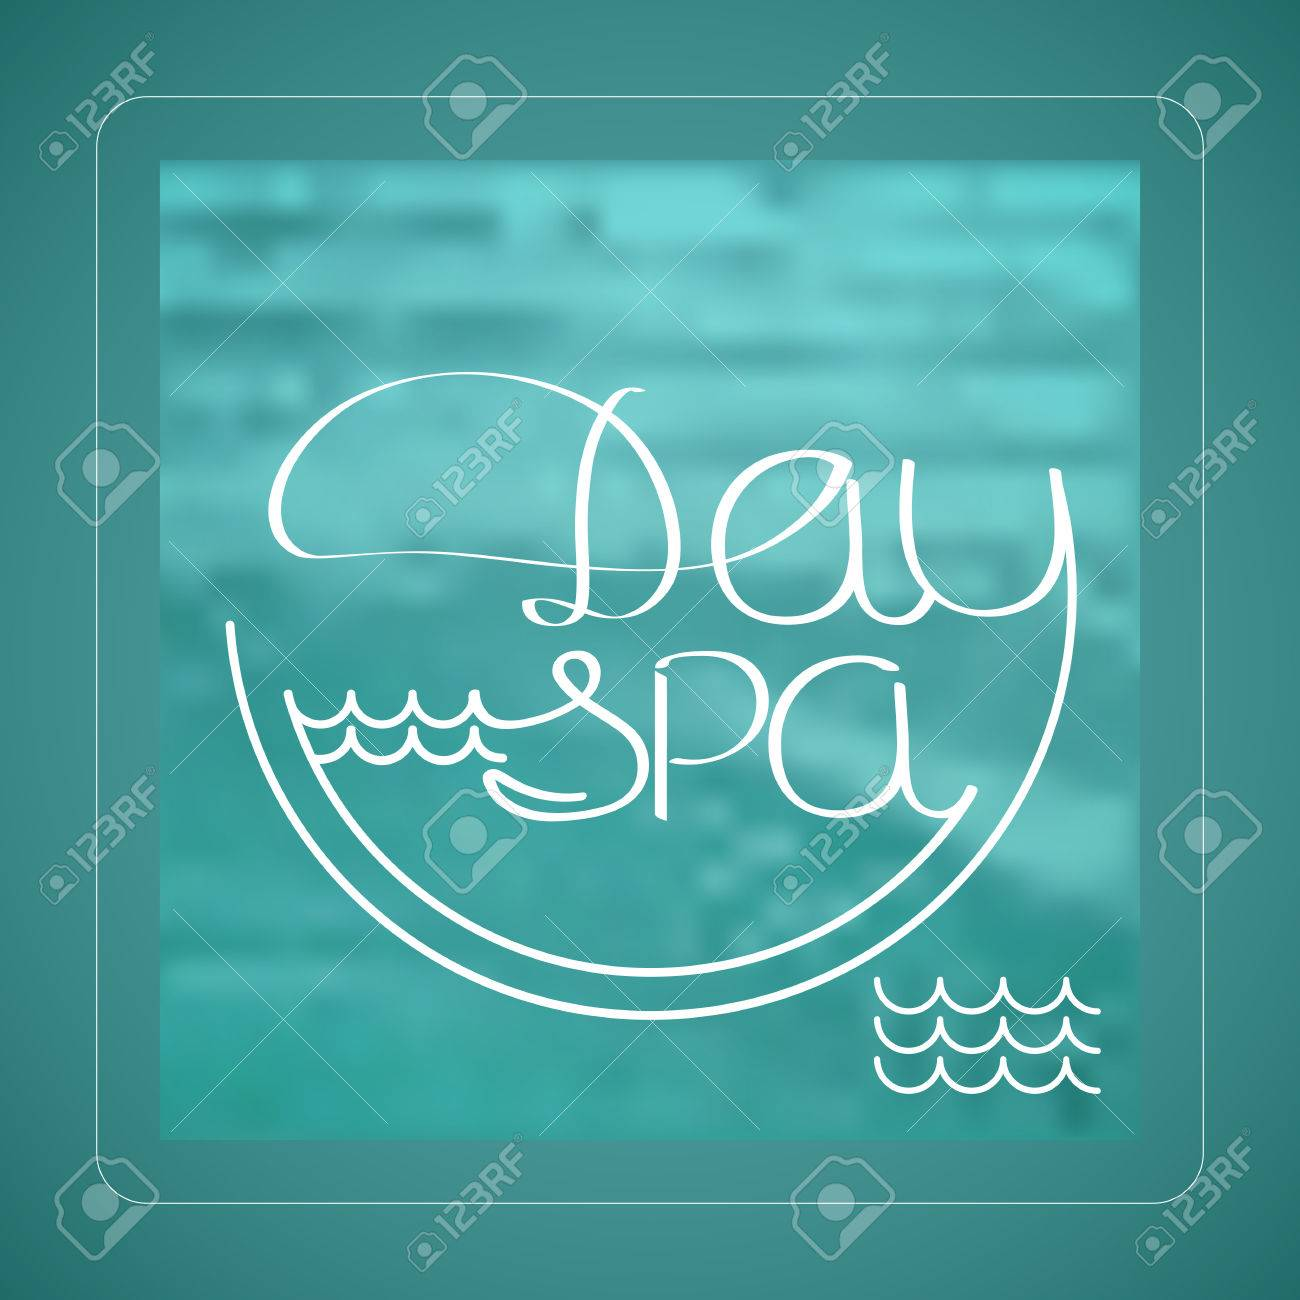 Aquarine Spa Vector Illustration With White Handwritten Word Day Spa On Aquamarine